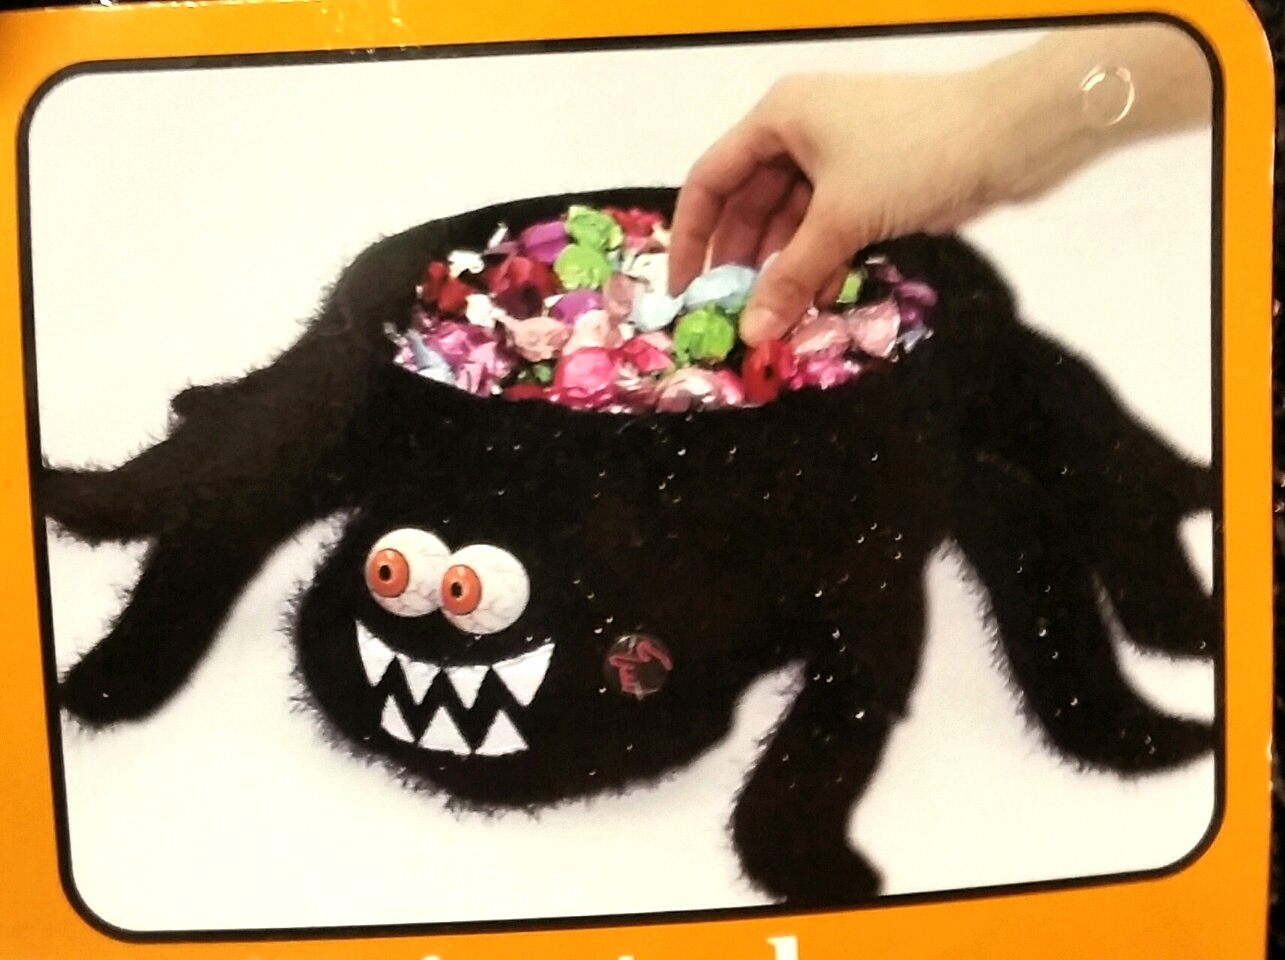 19 Inch Black Spider Light Up Musical Plush Halloween Candy Bowl - Plays ''Zombie Dance'' by Eerie Alley (Image #3)